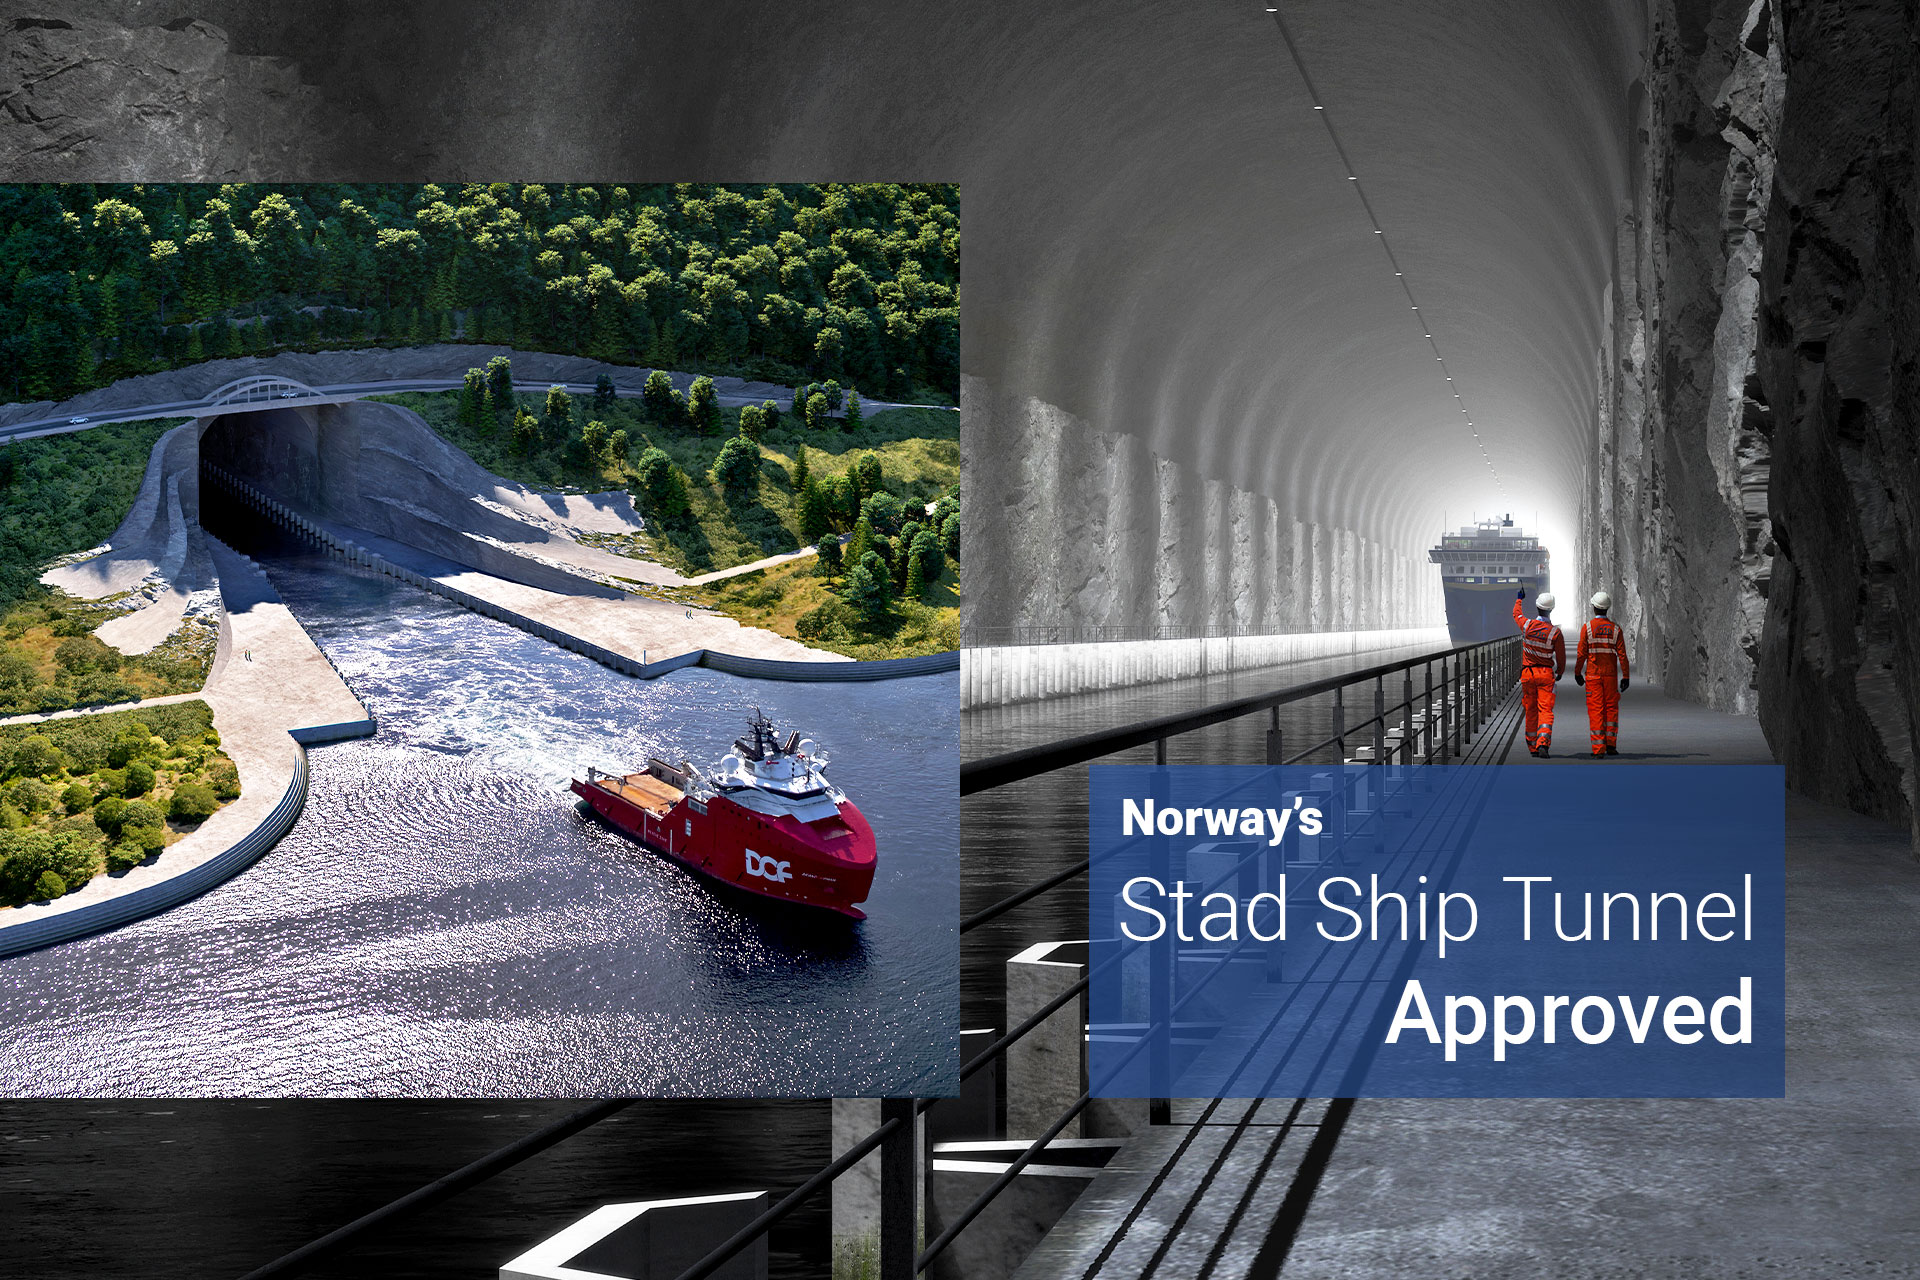 Stad ship tunnel - Norway's ship tunnel approved featured image